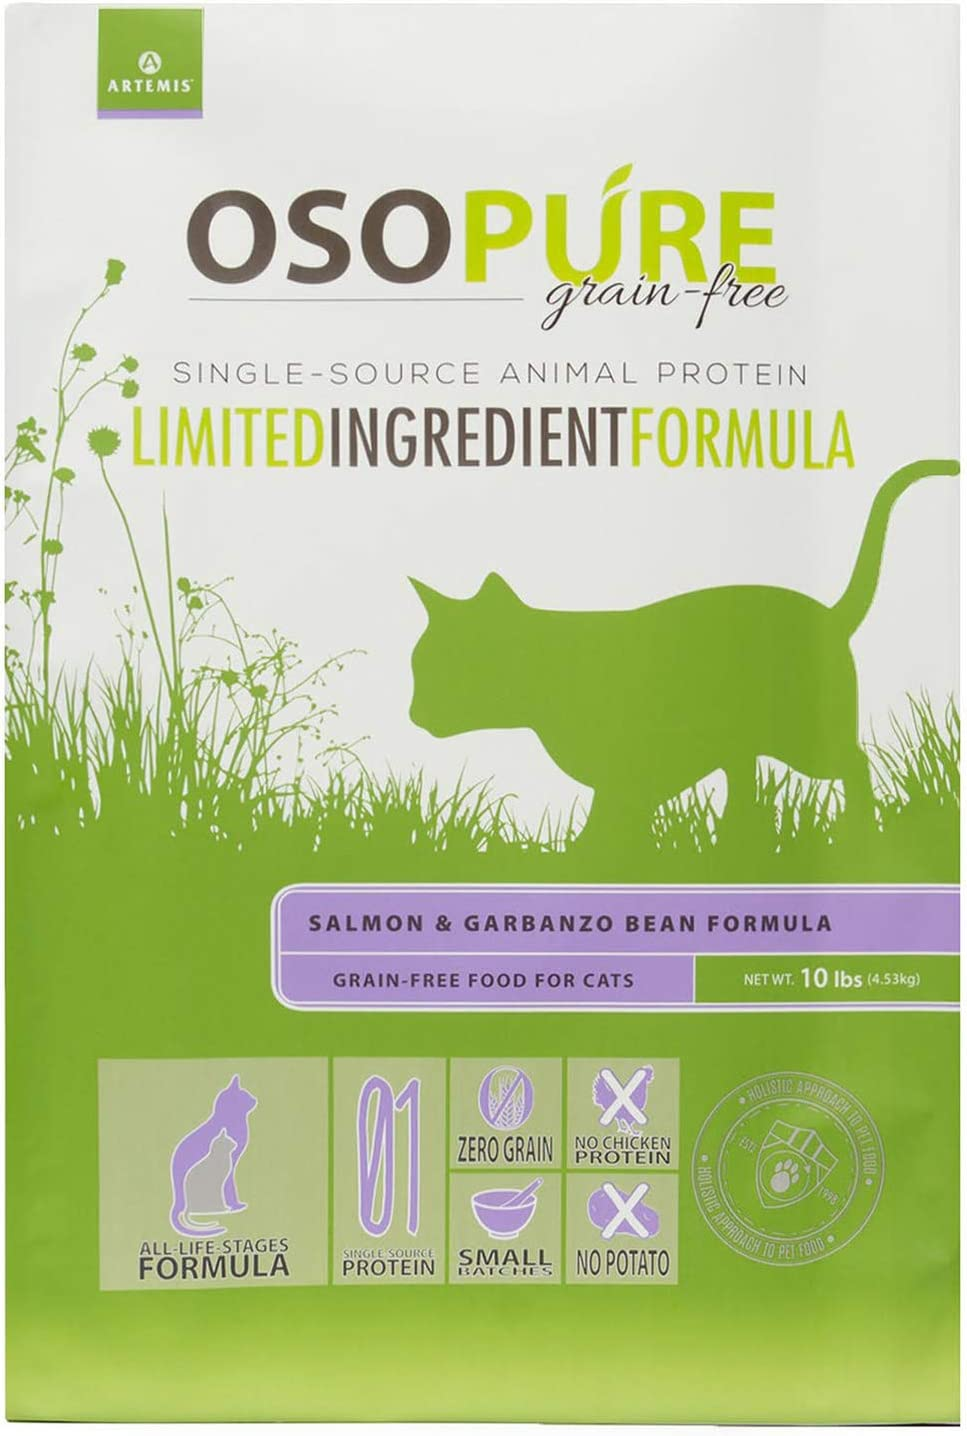 Artemis OSOPURE Dry Pet Food - Grain Free Limited Ingredient Single Dual Source Protein Nutrition All Life Stages for Dog Cat